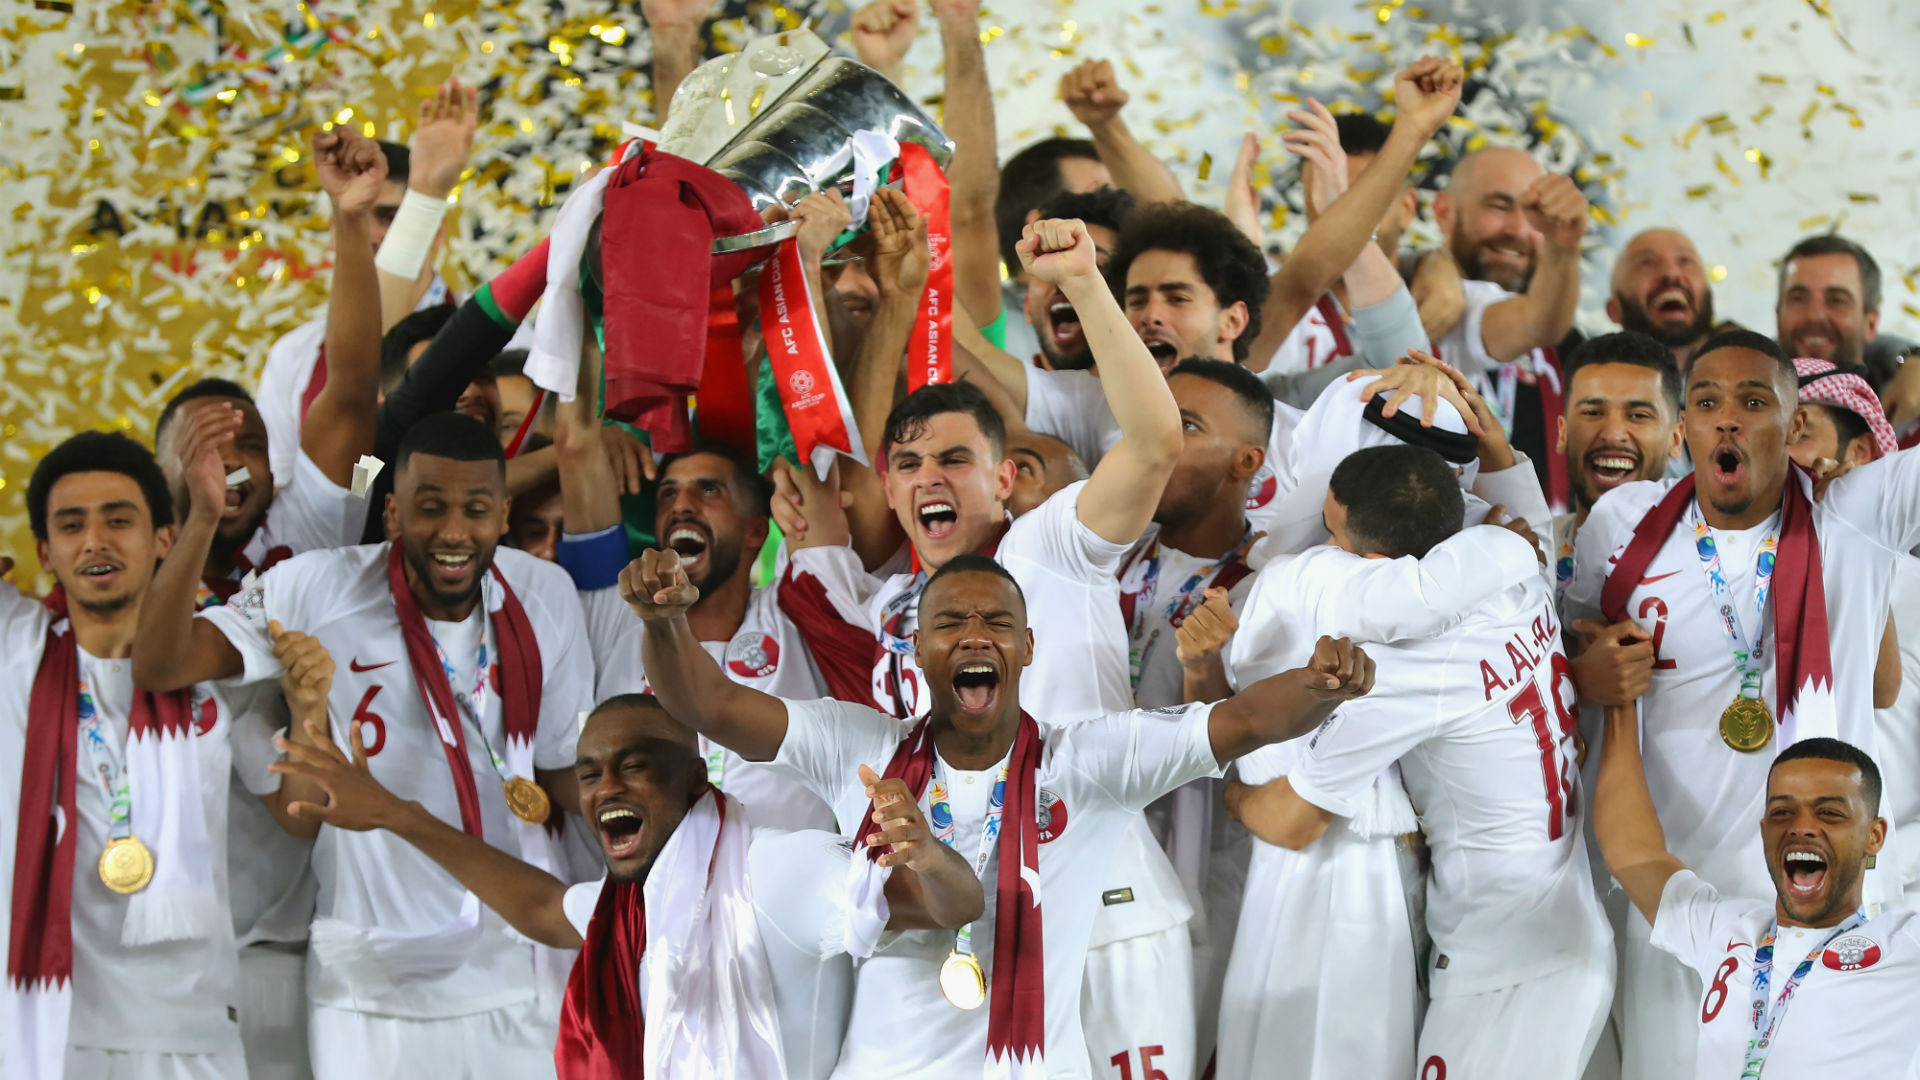 Qatar climb 38 places in FIFA rankings after Asian Cup triumph